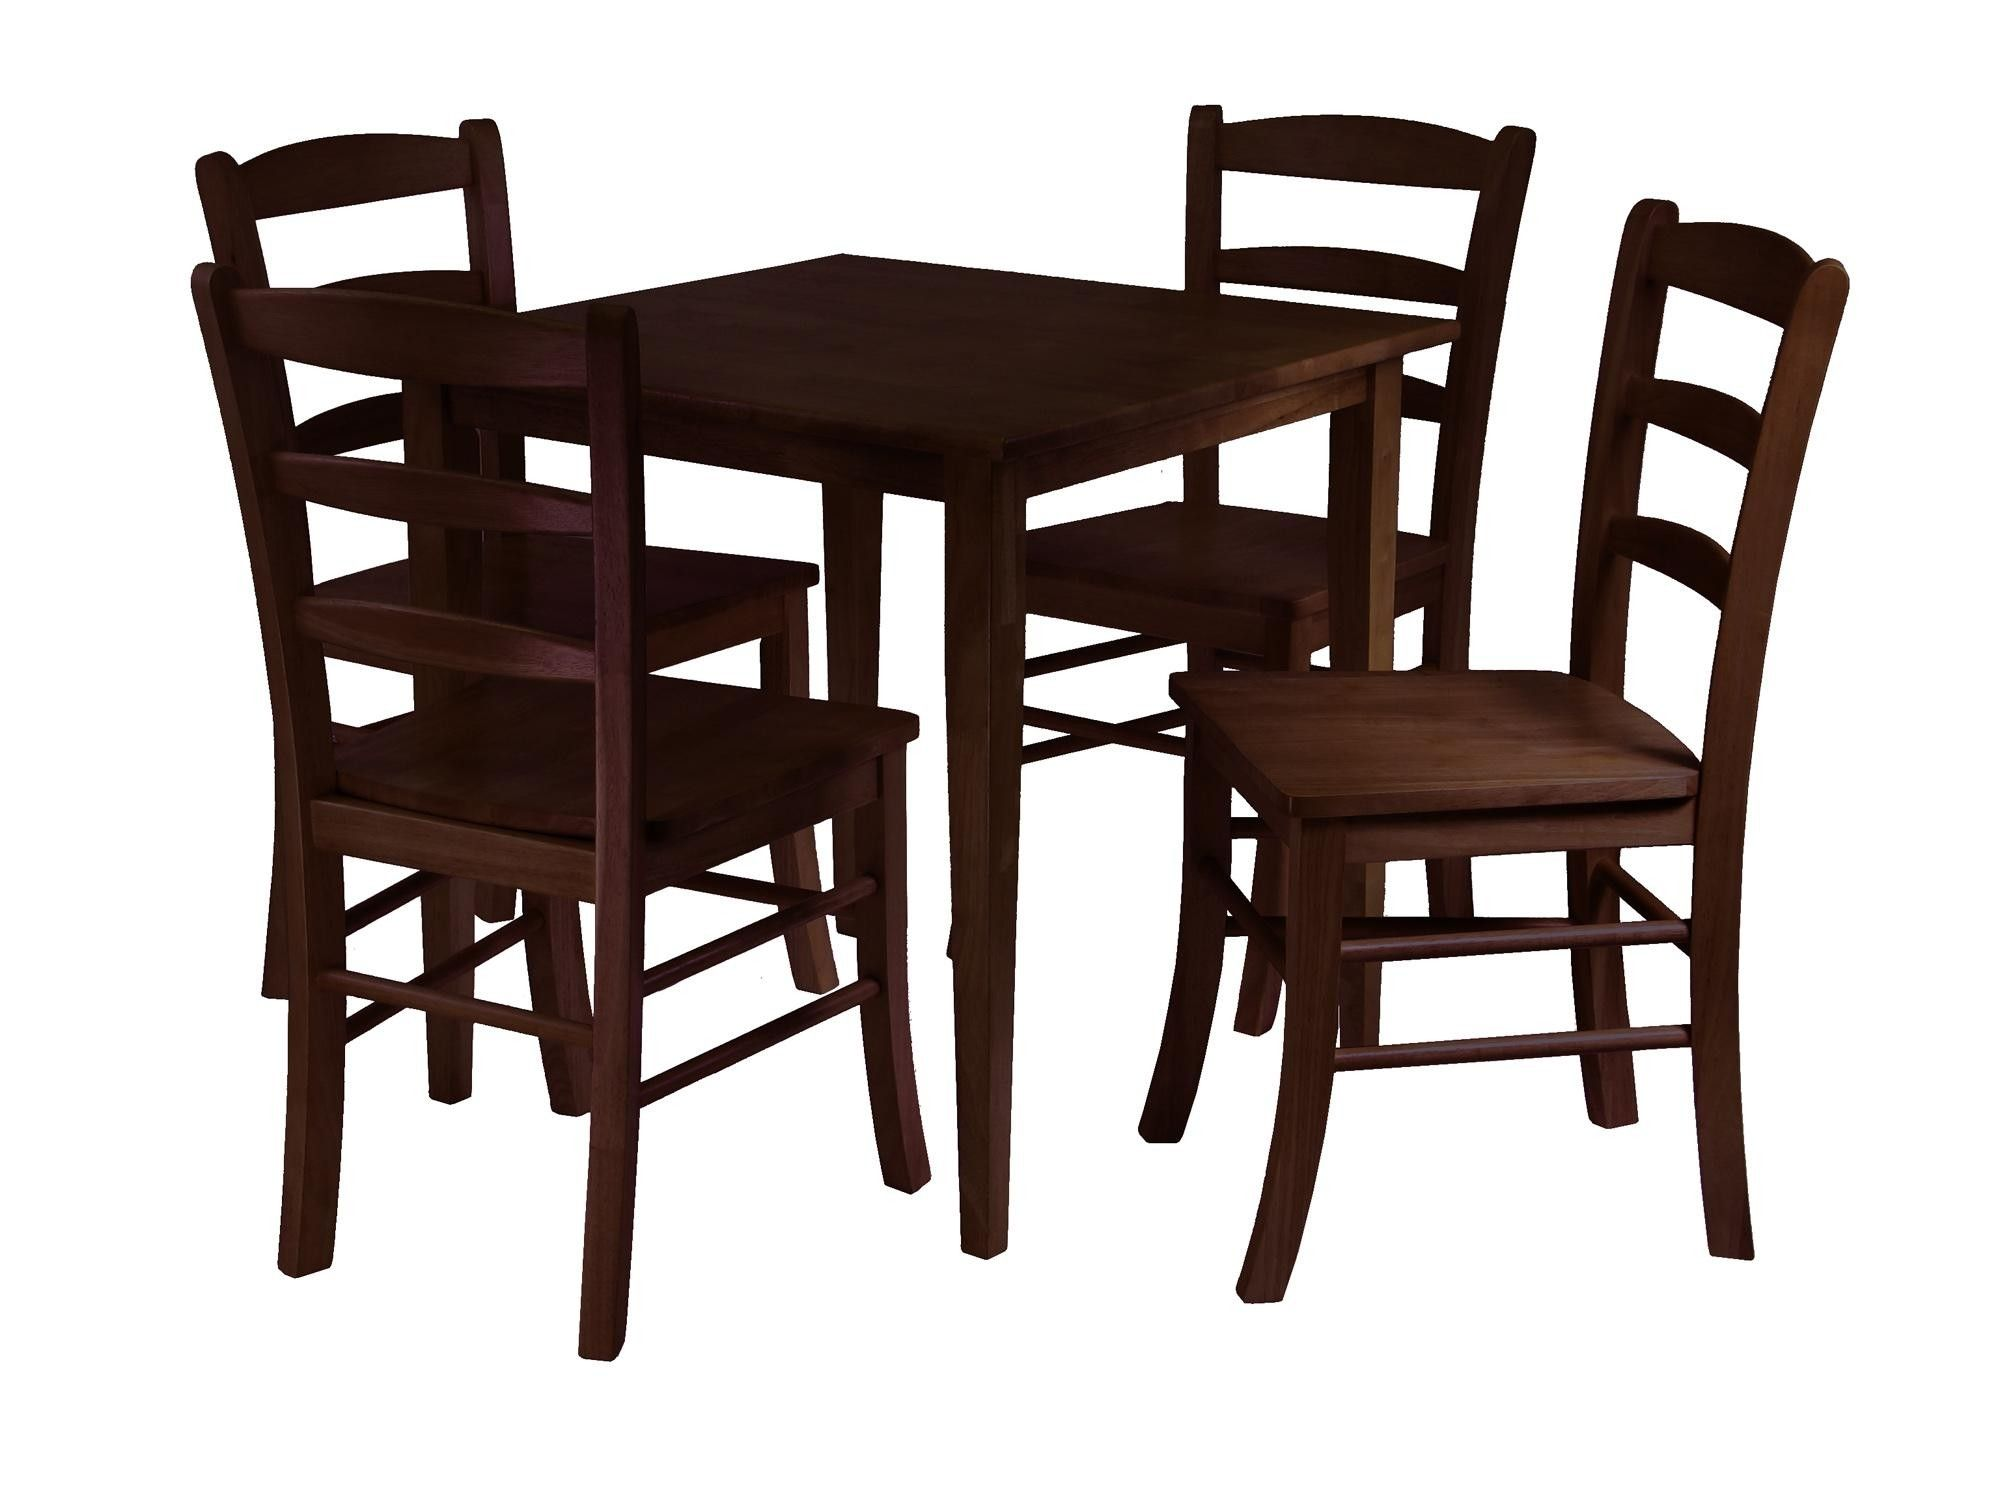 Dining Table Clipart at GetDrawings.com.